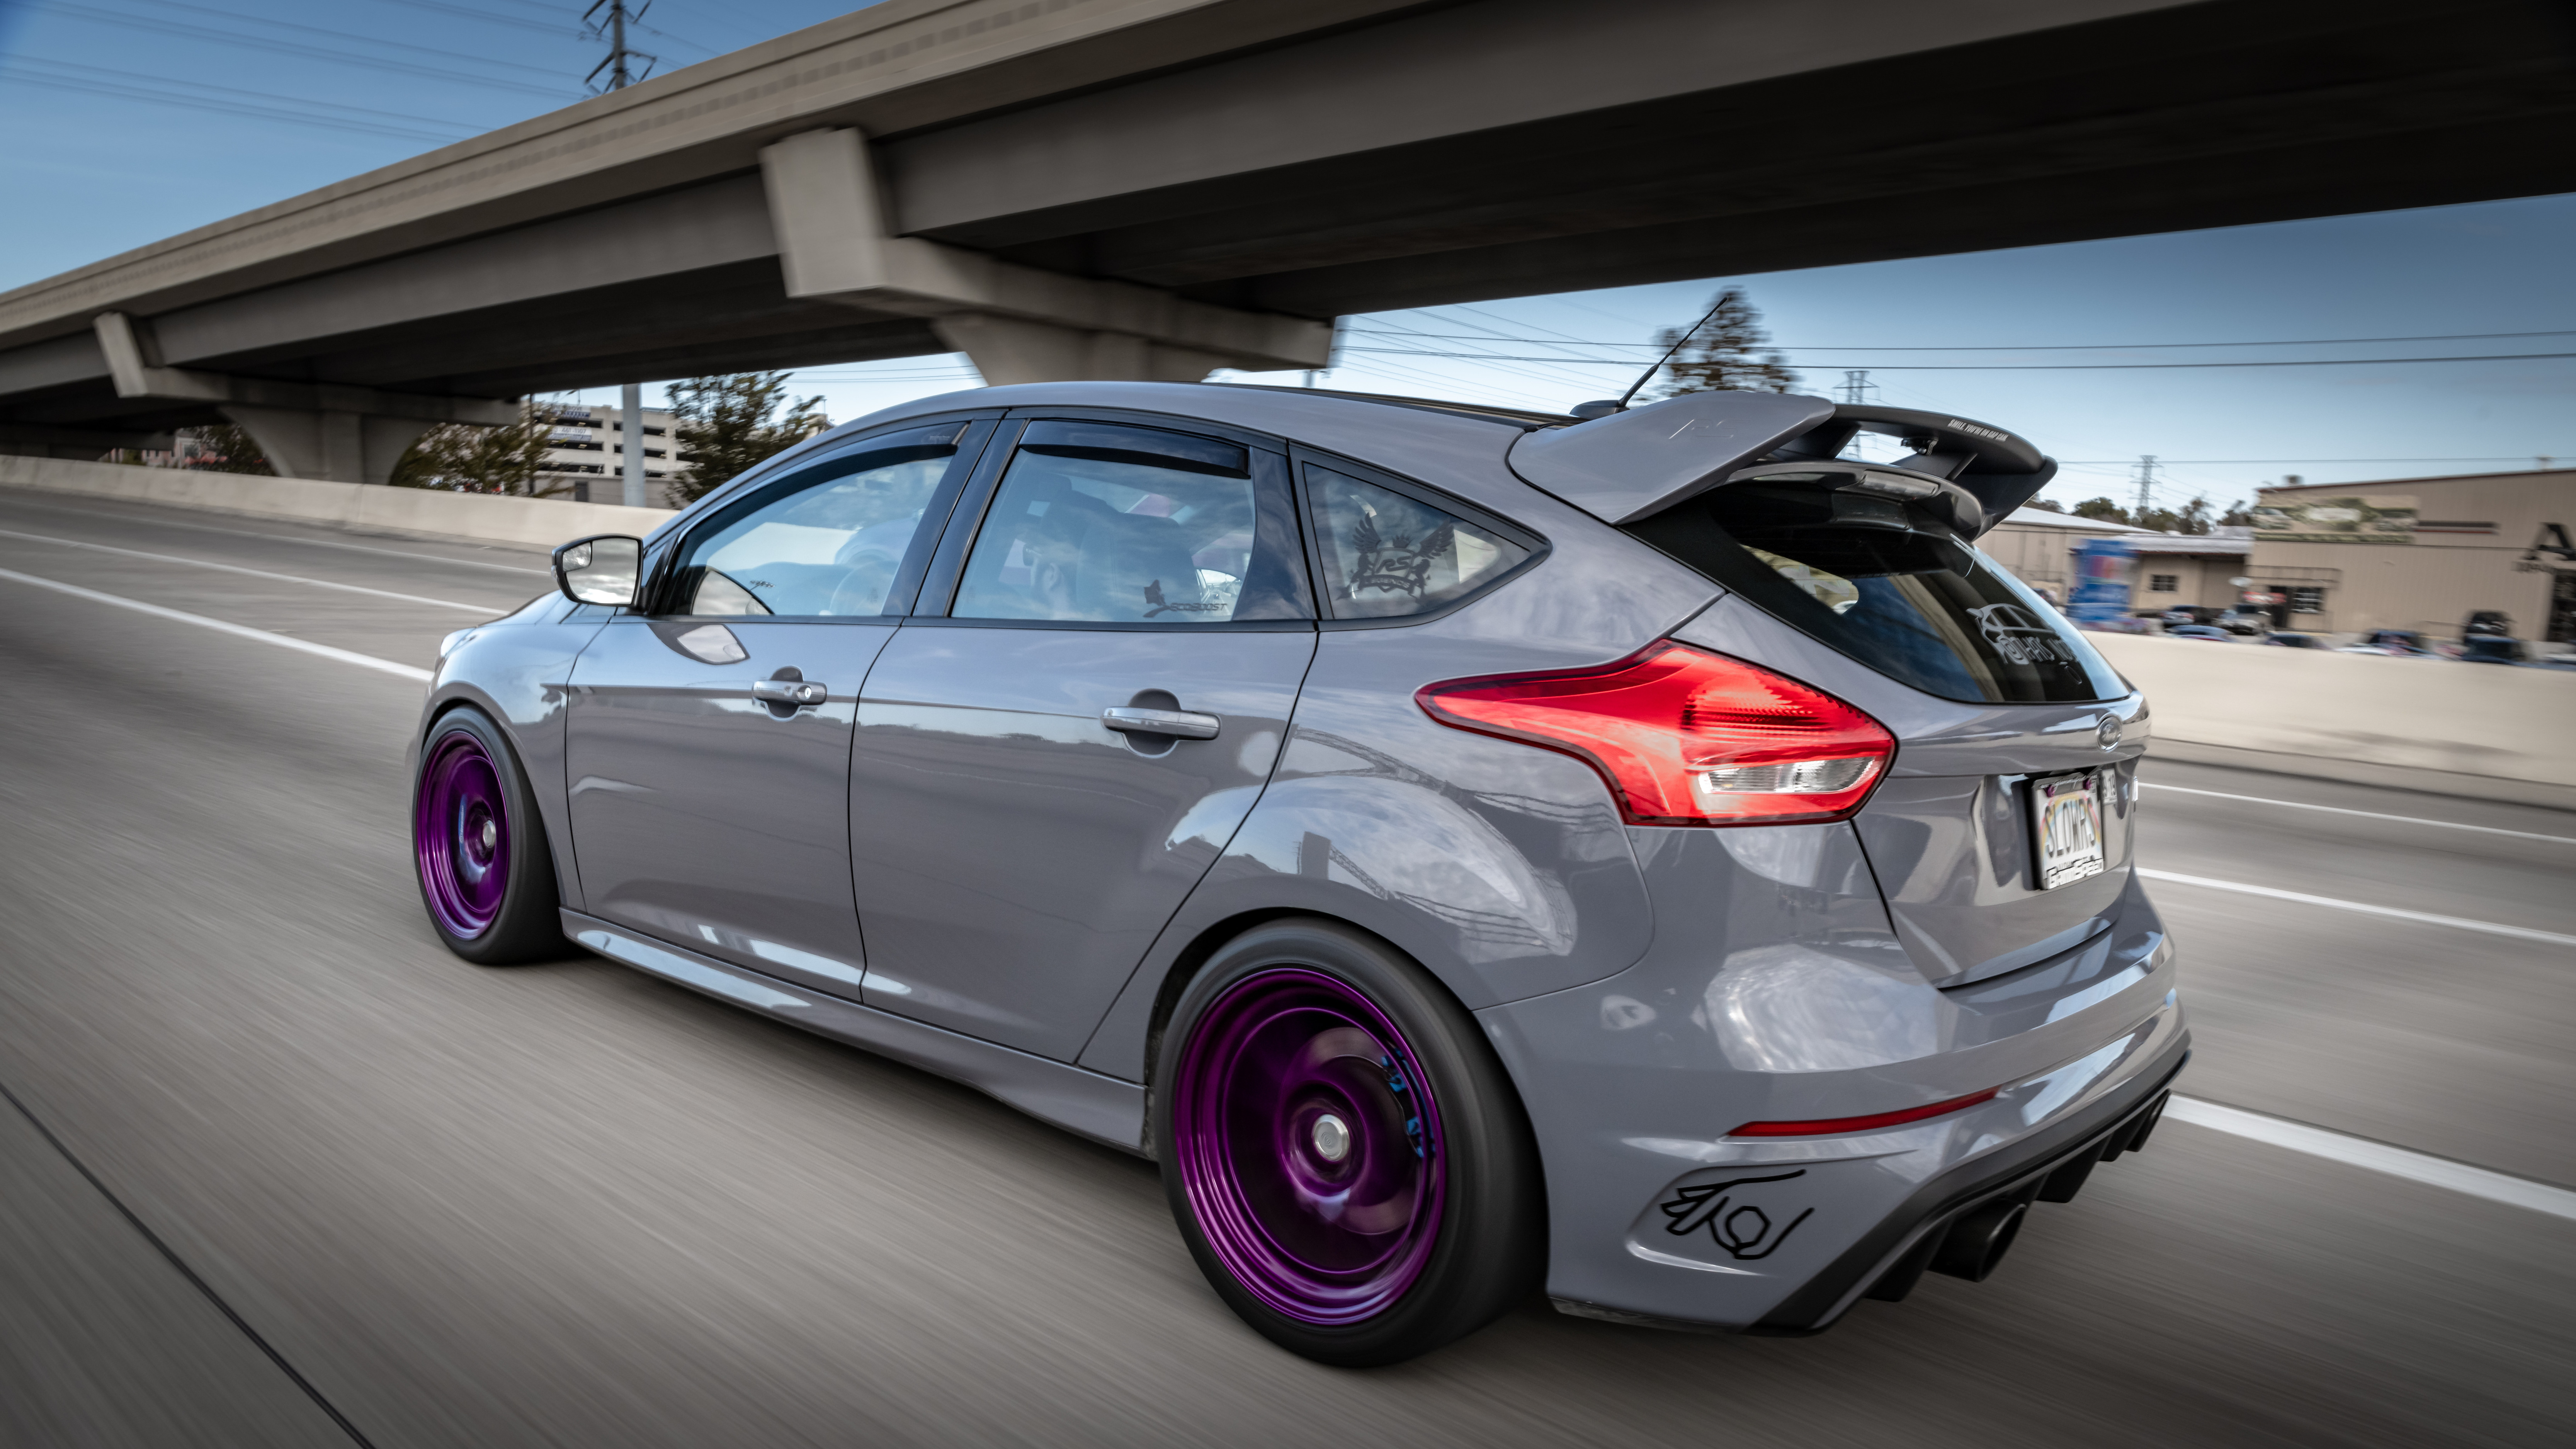 Add on Rollers